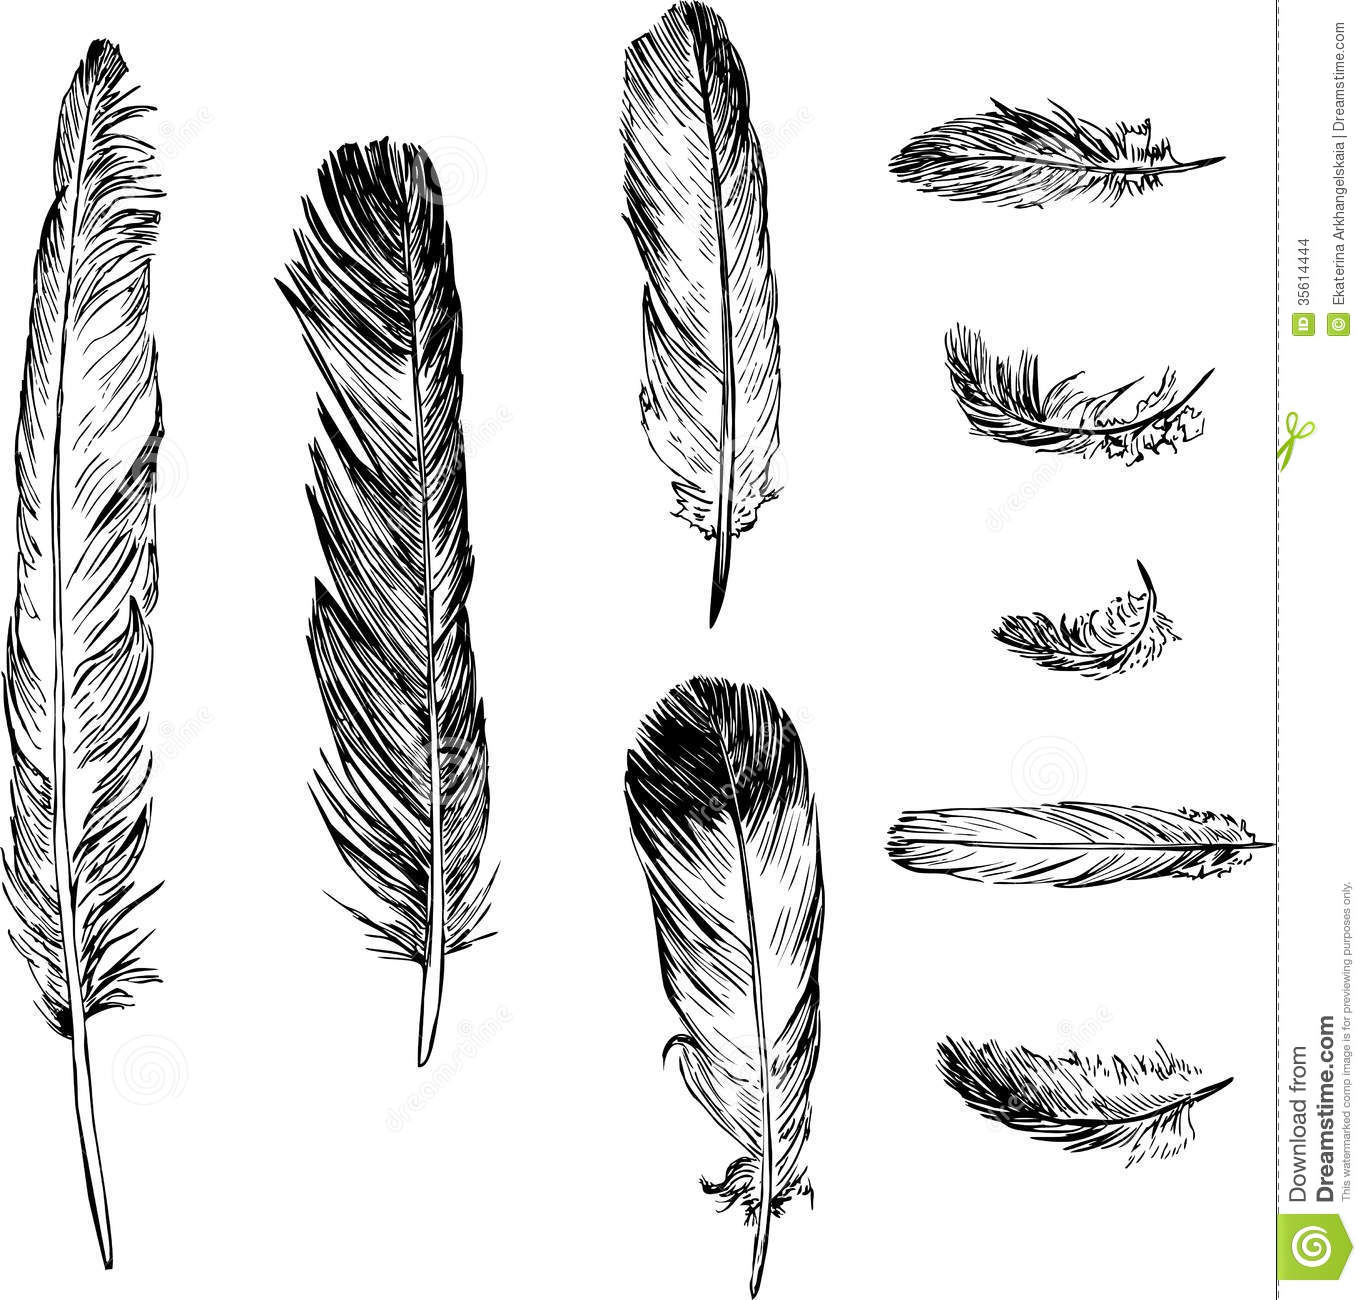 how to set up the huzzah feather